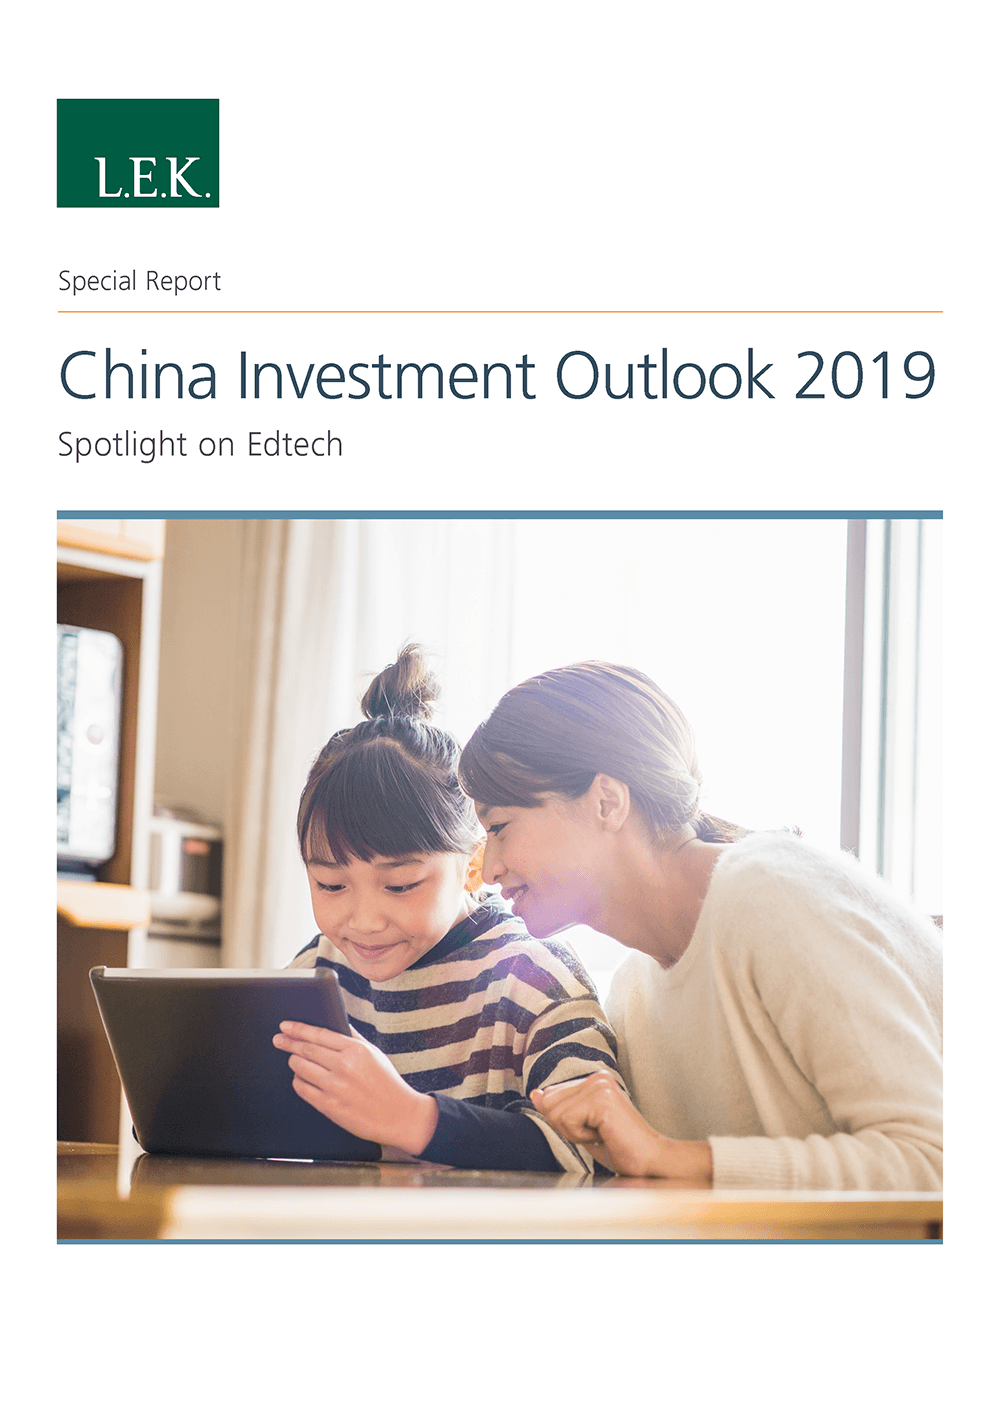 edtech outlook in china report